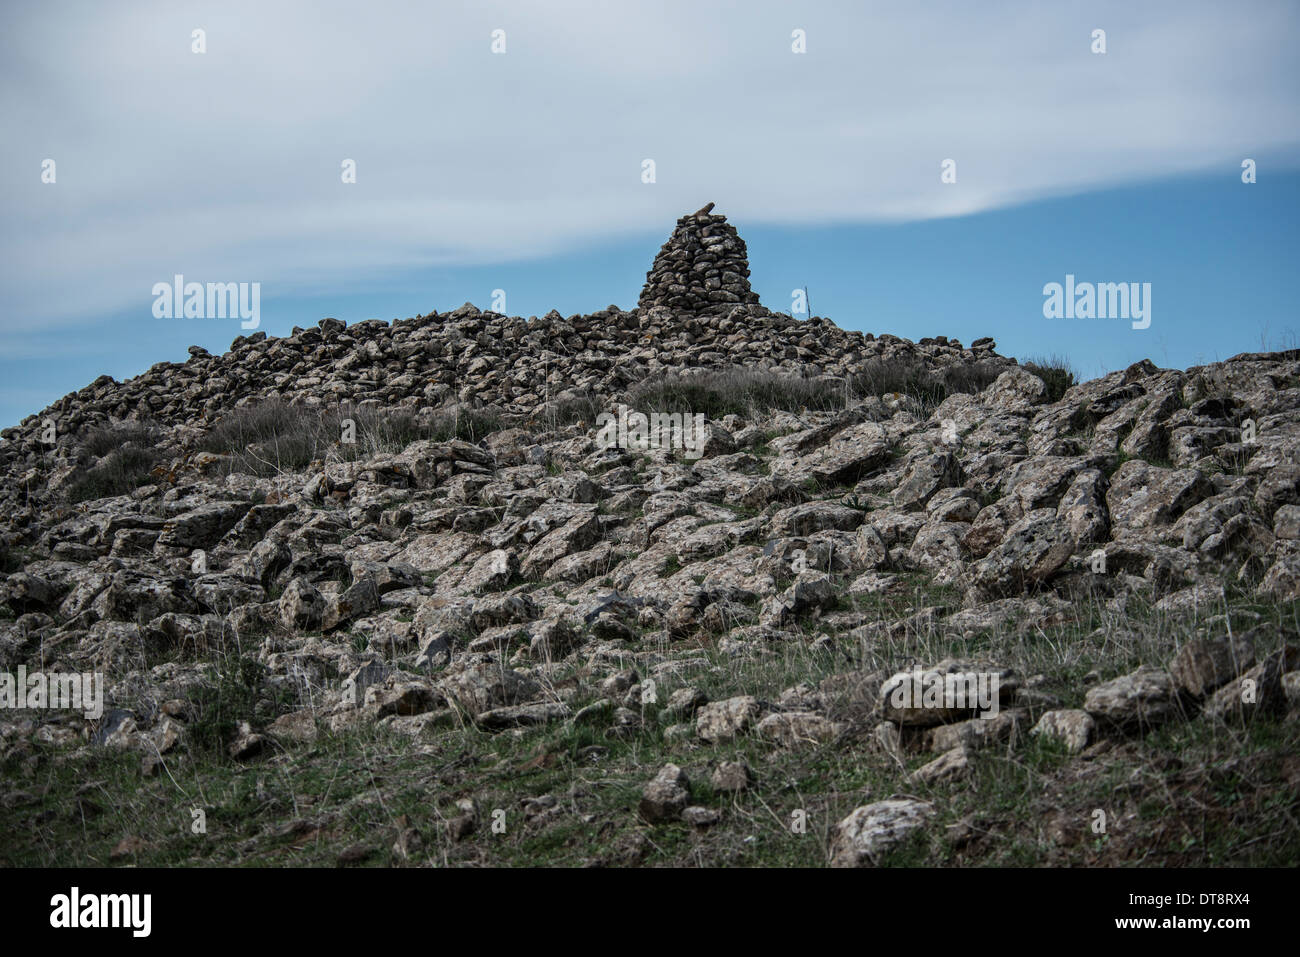 Image result for Israel's ancient and mysterious Stonehenge